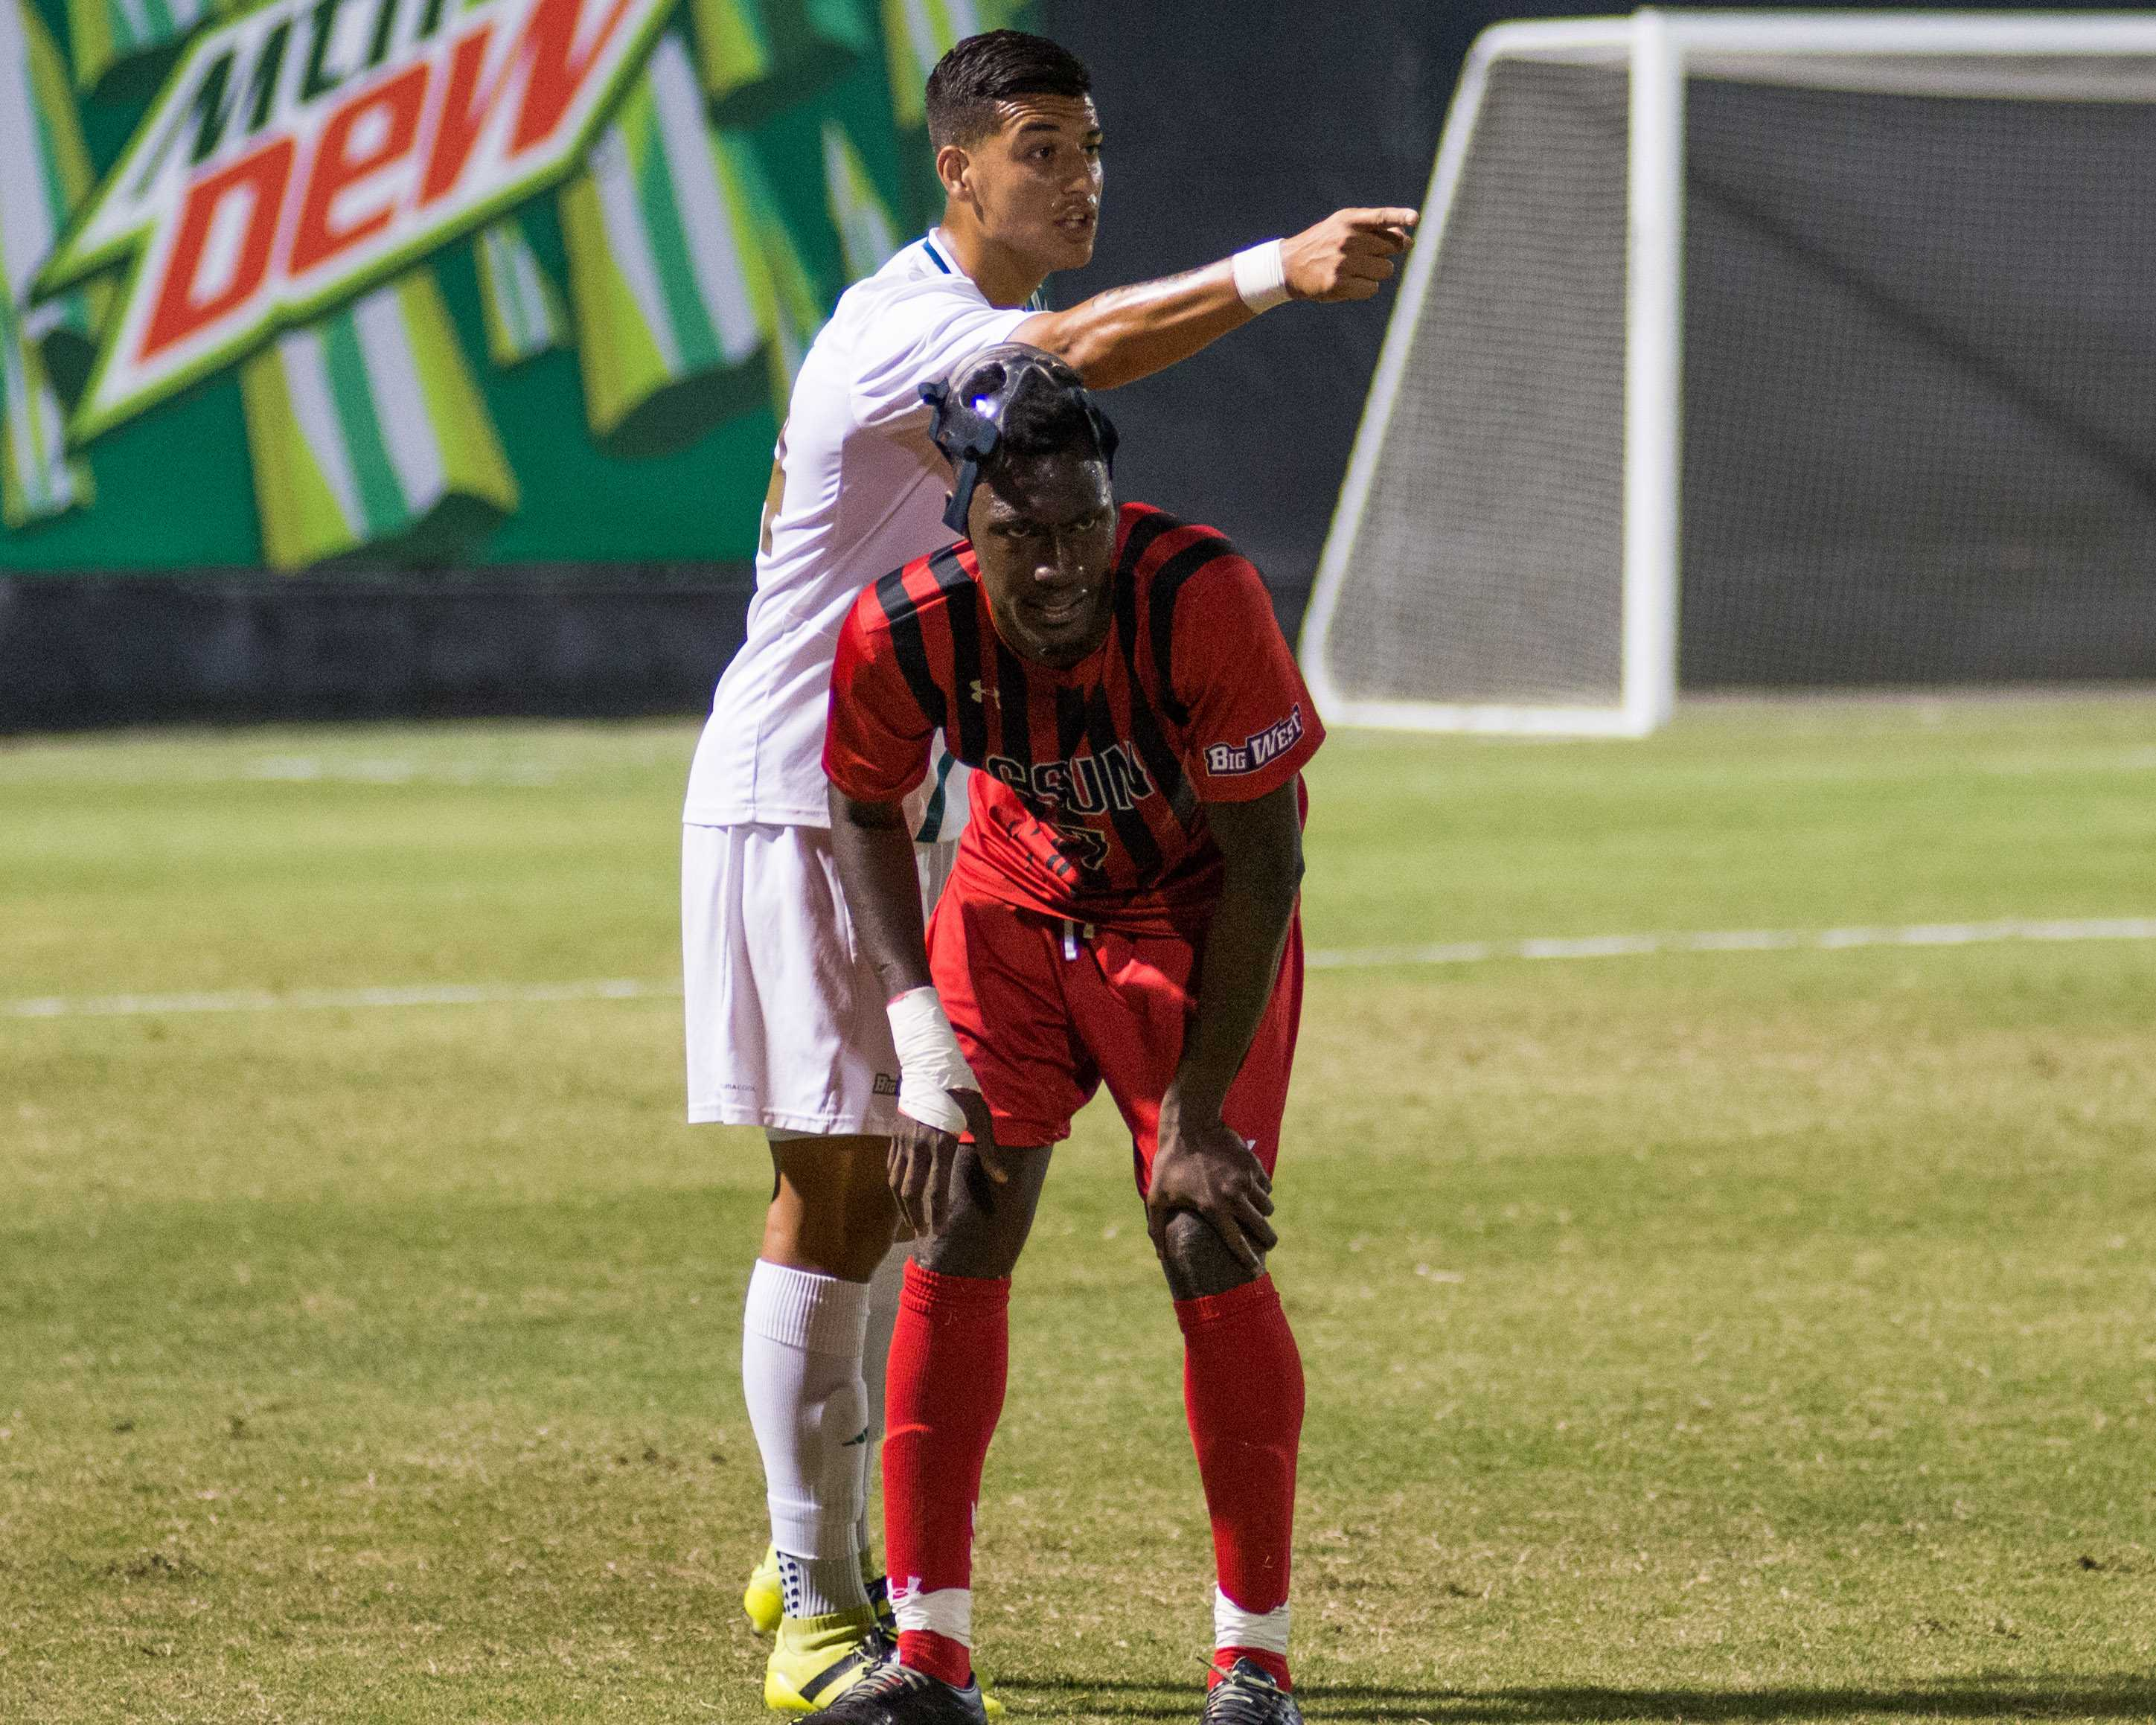 CSUF soccer player points while CSUN player is hunched over